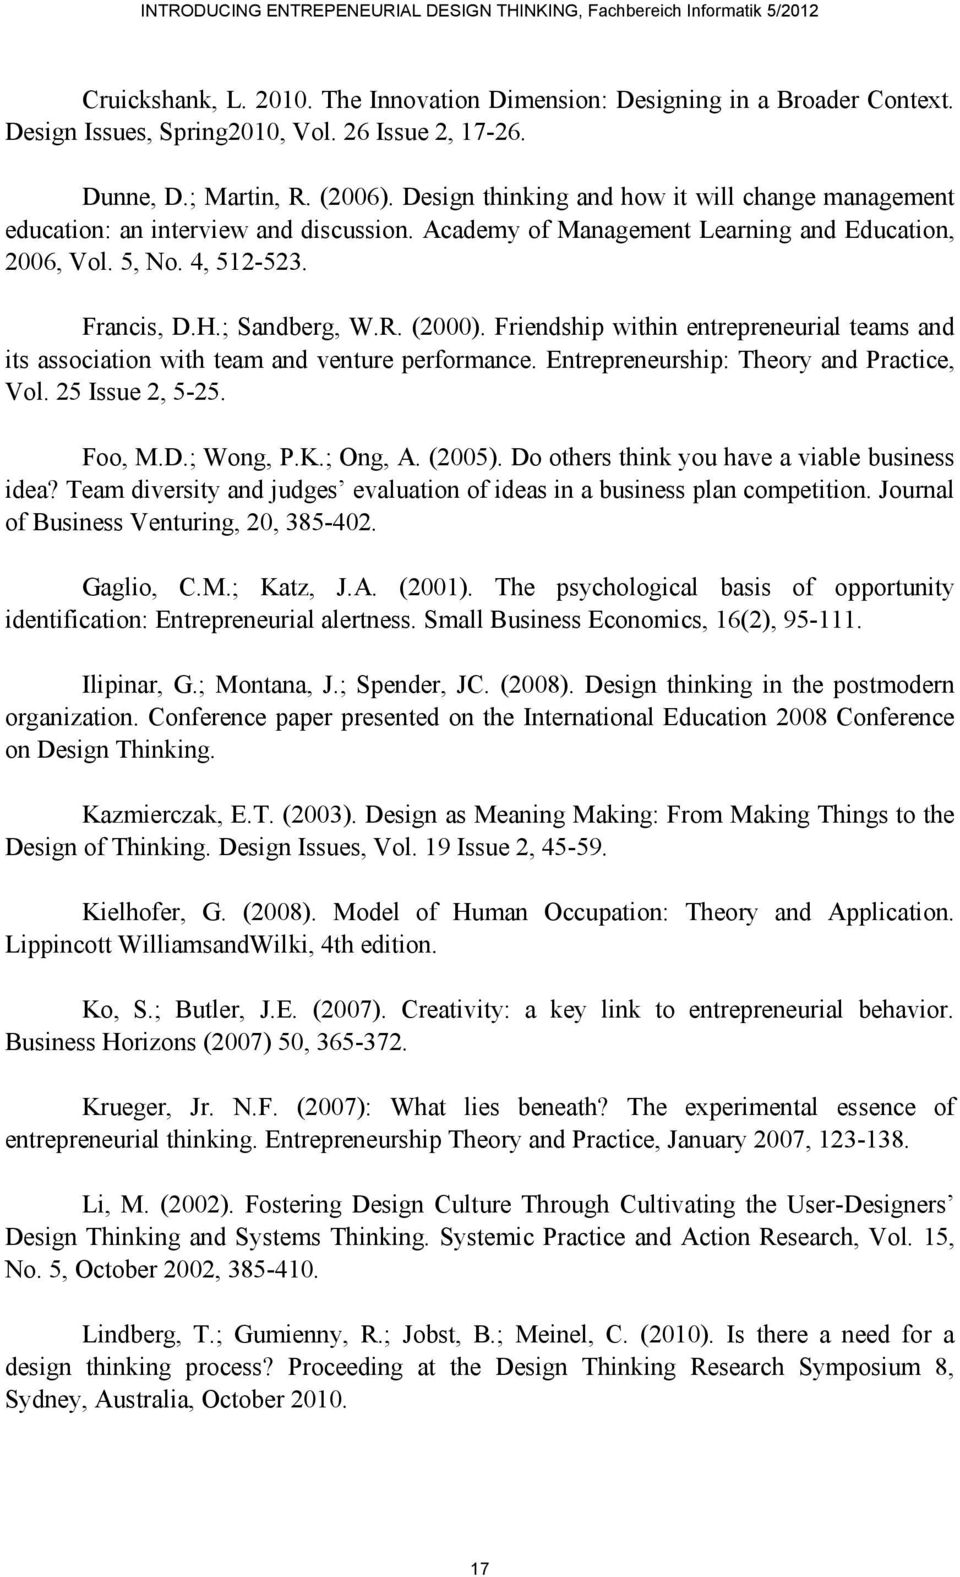 (2000). Friendship within entrepreneurial teams and its association with team and venture performance. Entrepreneurship: Theory and Practice, Vol. 25 Issue 2, 5-25. Foo, M.D.; Wong, P.K.; Ong, A.